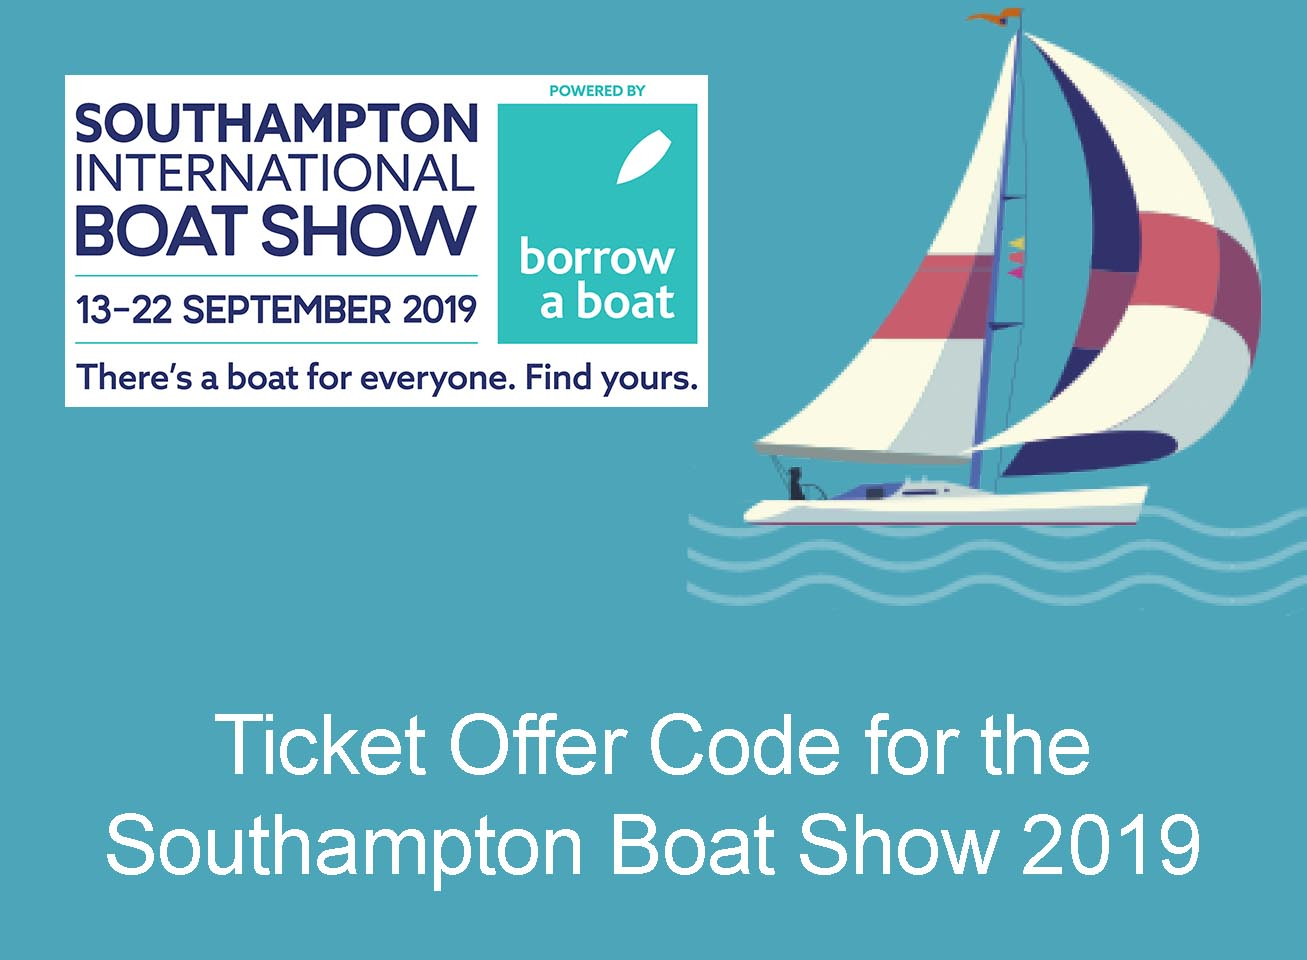 Ticket Offer Code for the Southampton Boat Show 2019